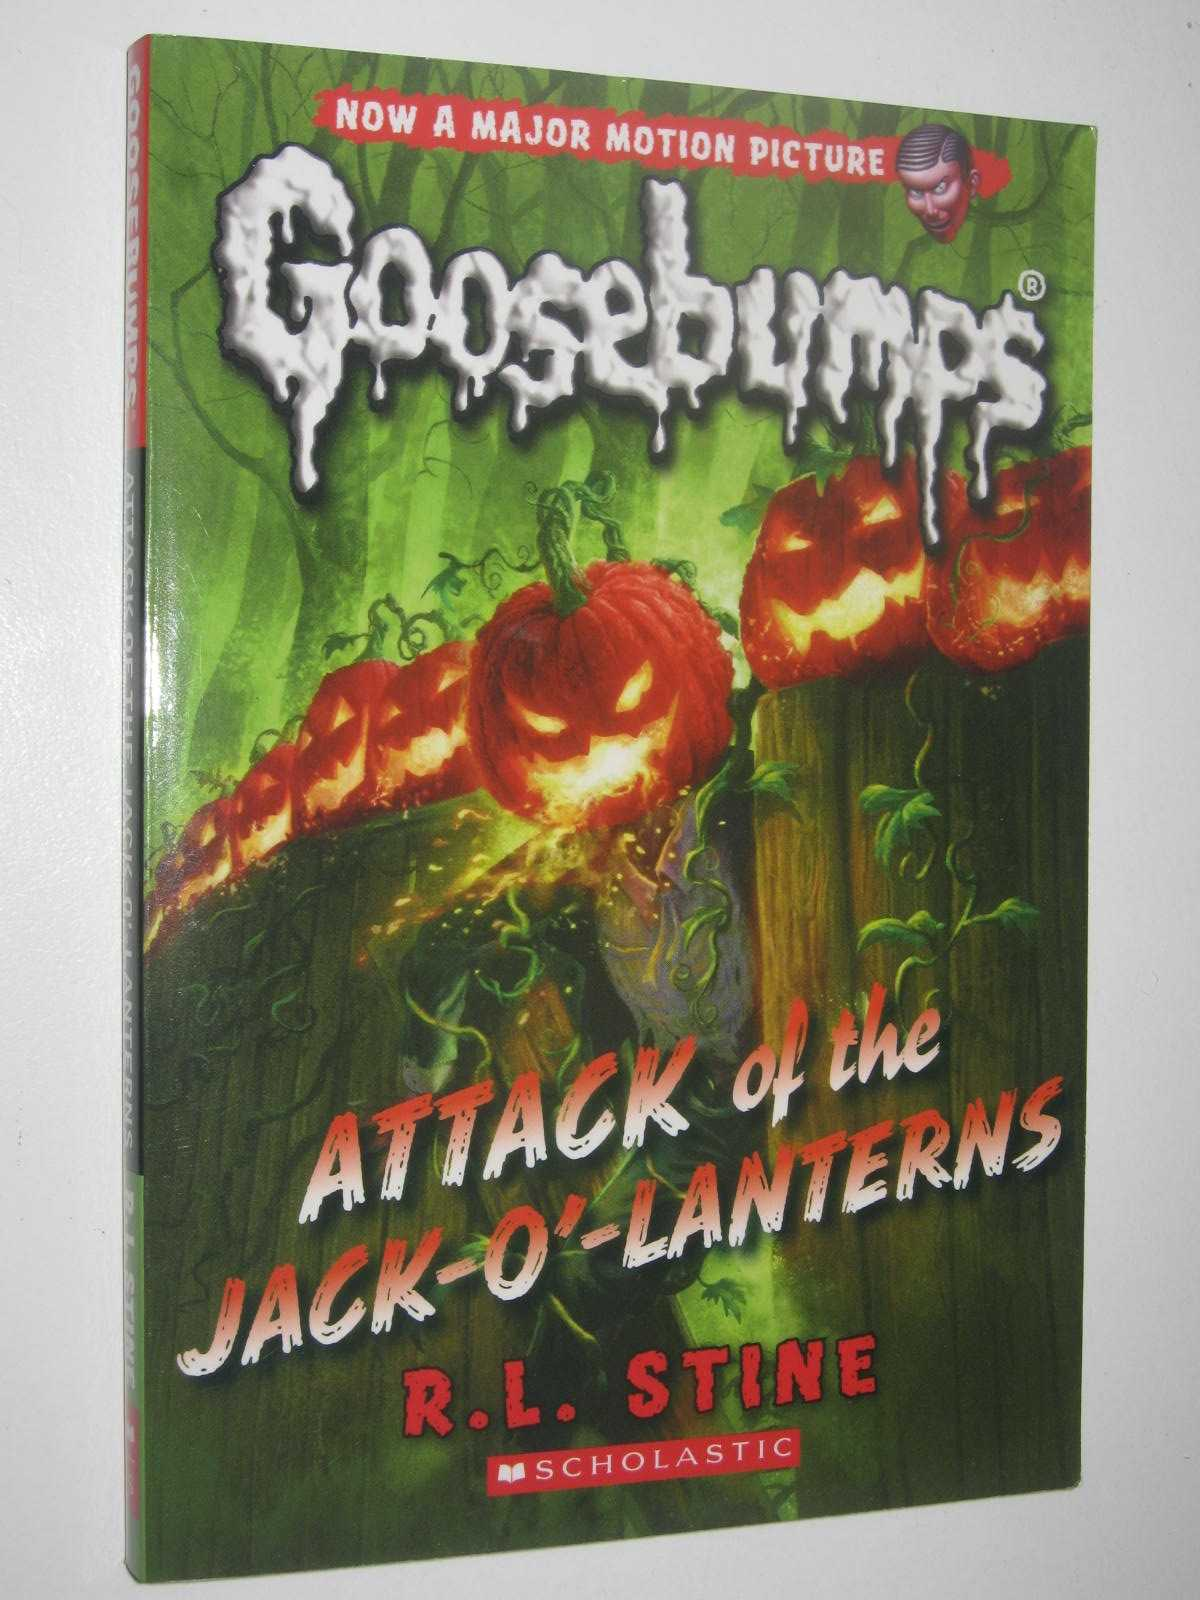 Image for Attack of the Jack-O'-Lanterns - Goosebumps Series